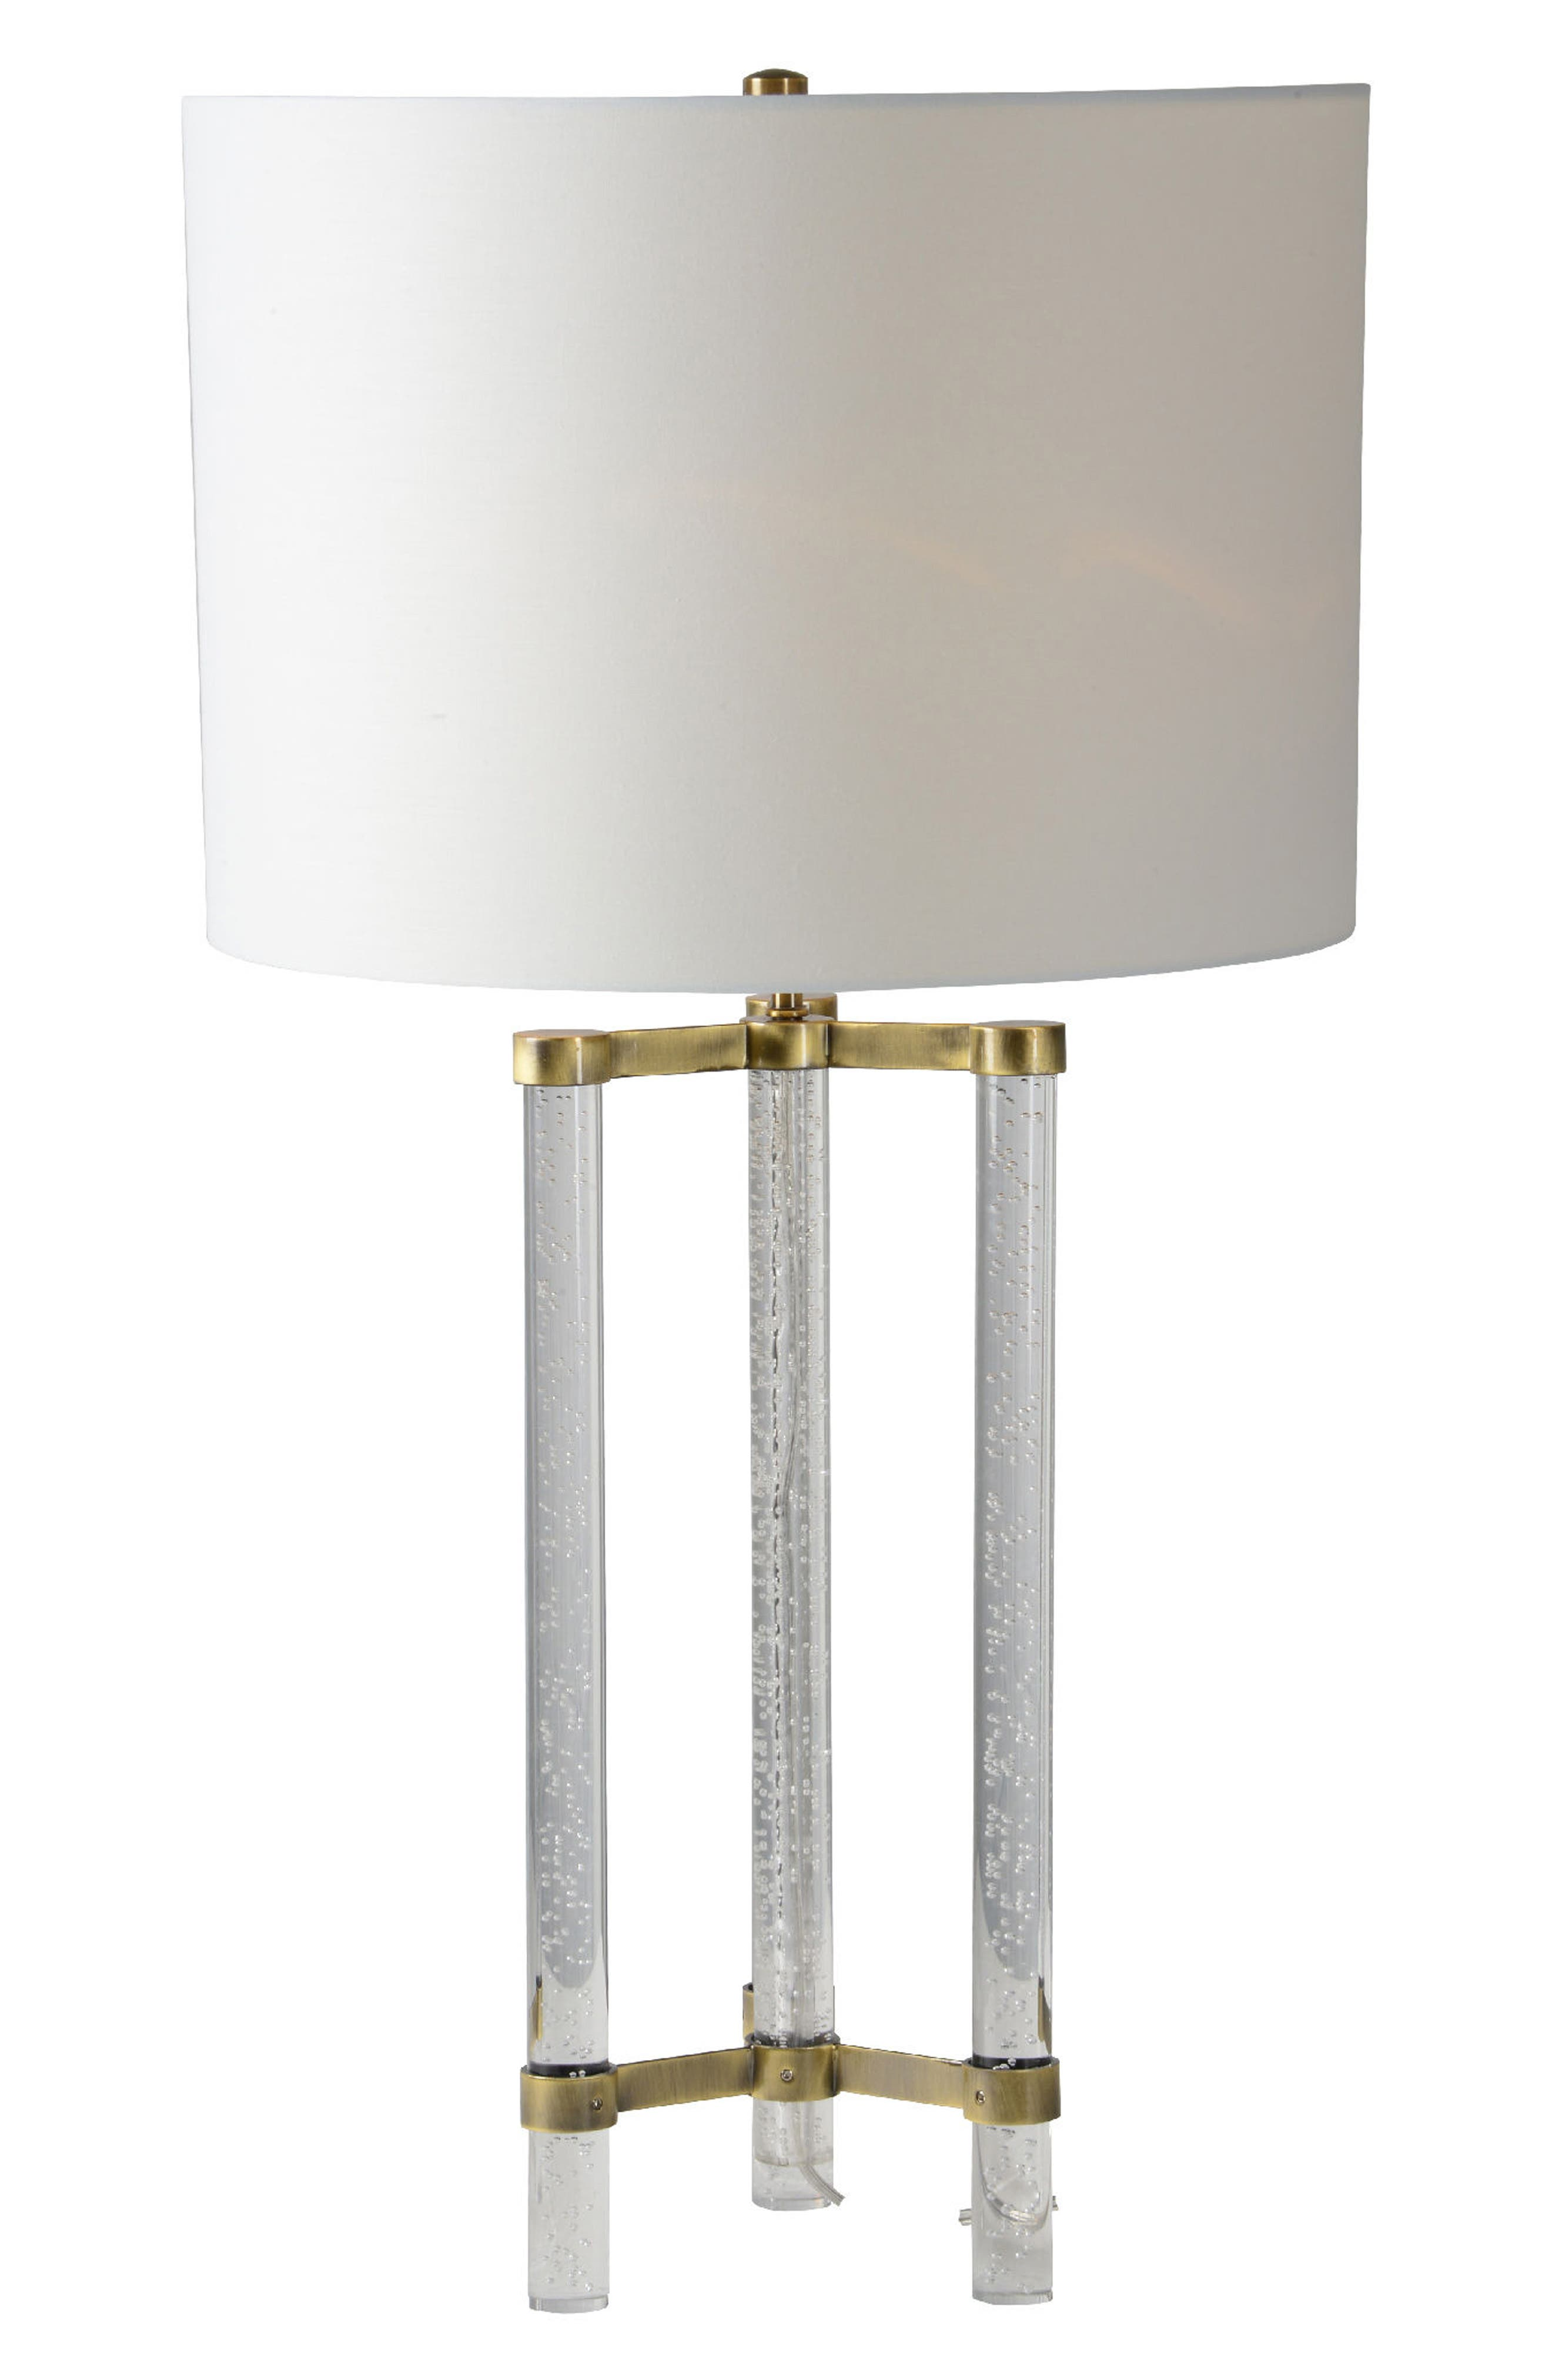 Dais Table Lamp,                         Main,                         color, Antique Gold Plated